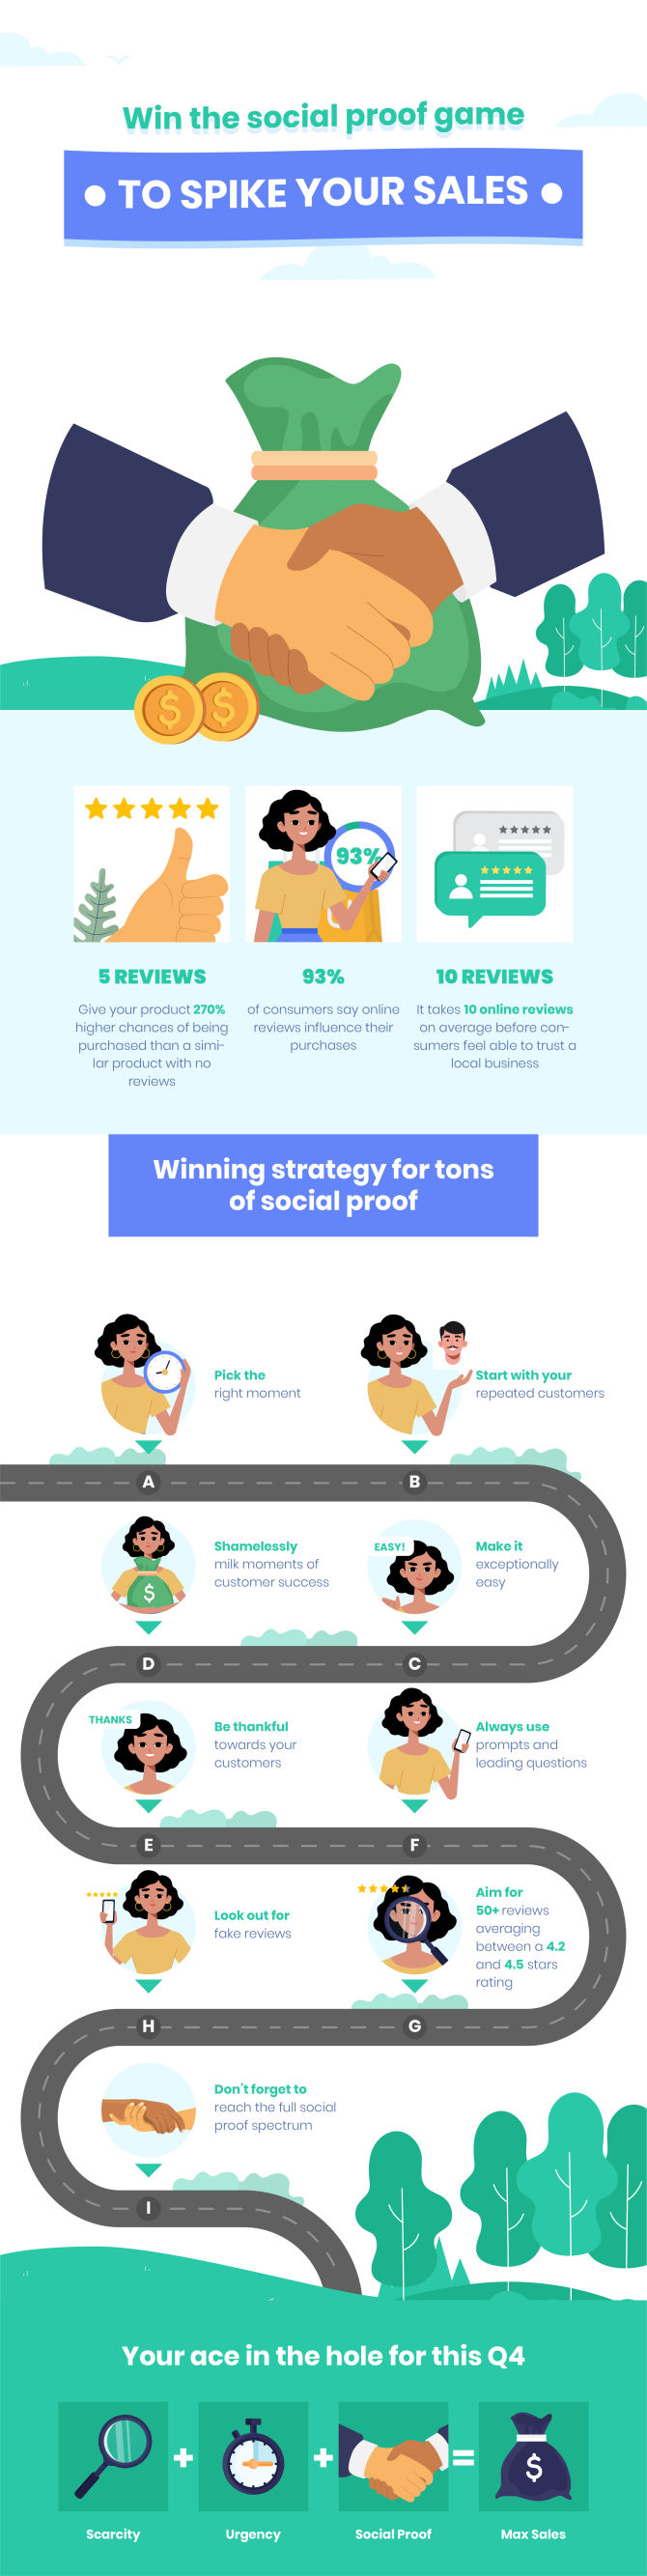 9 ways to use reviews to smash all sales records